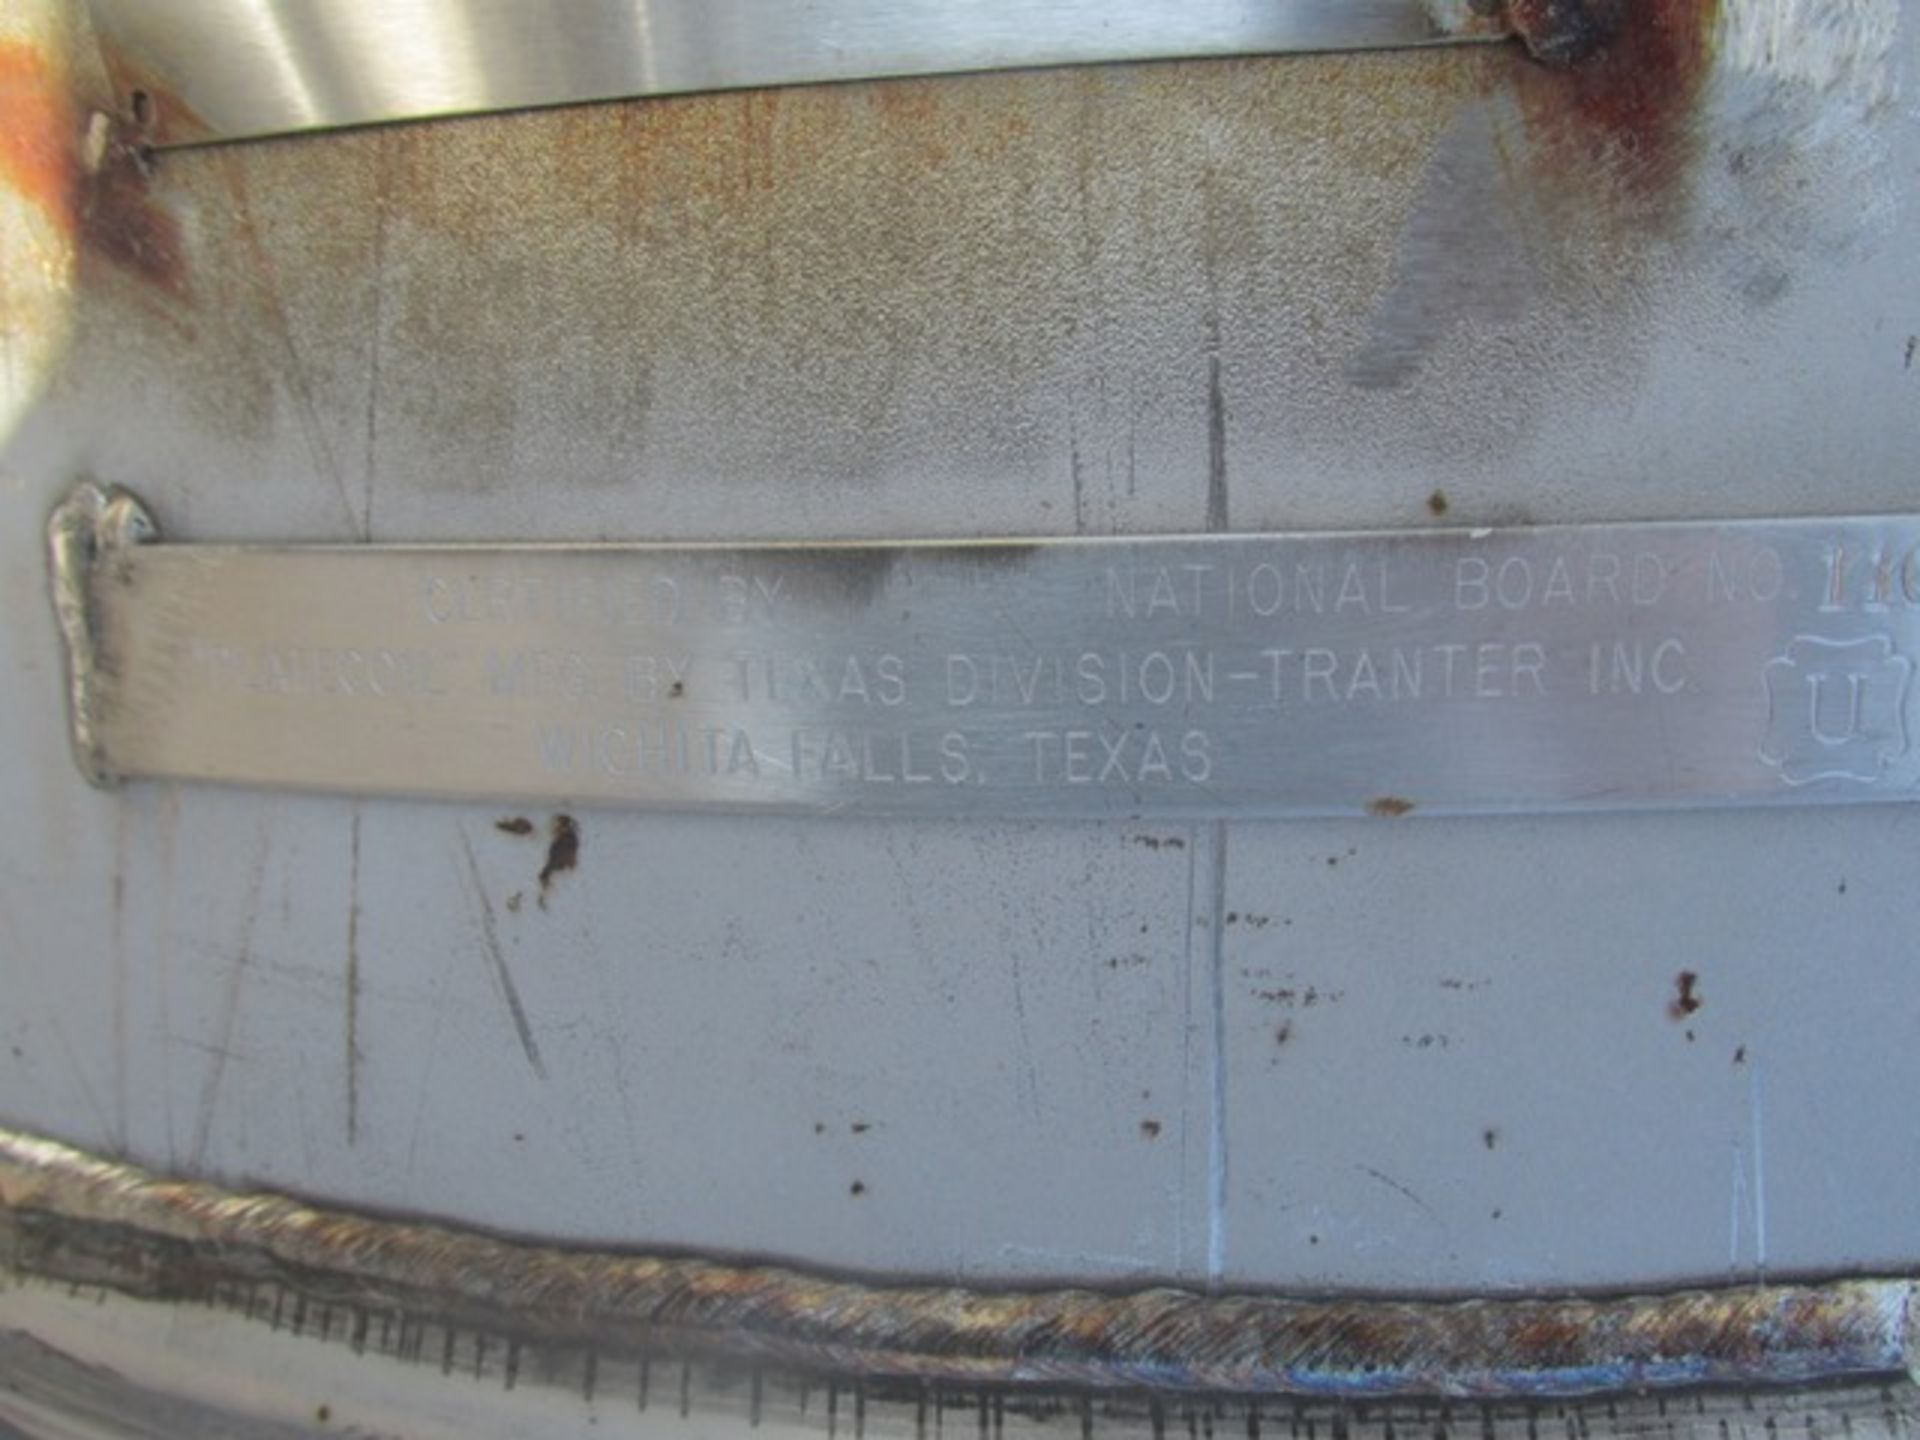 Lot 44 - 180 Gal Tolan Reactor Body, 304 S/S, 140/100#